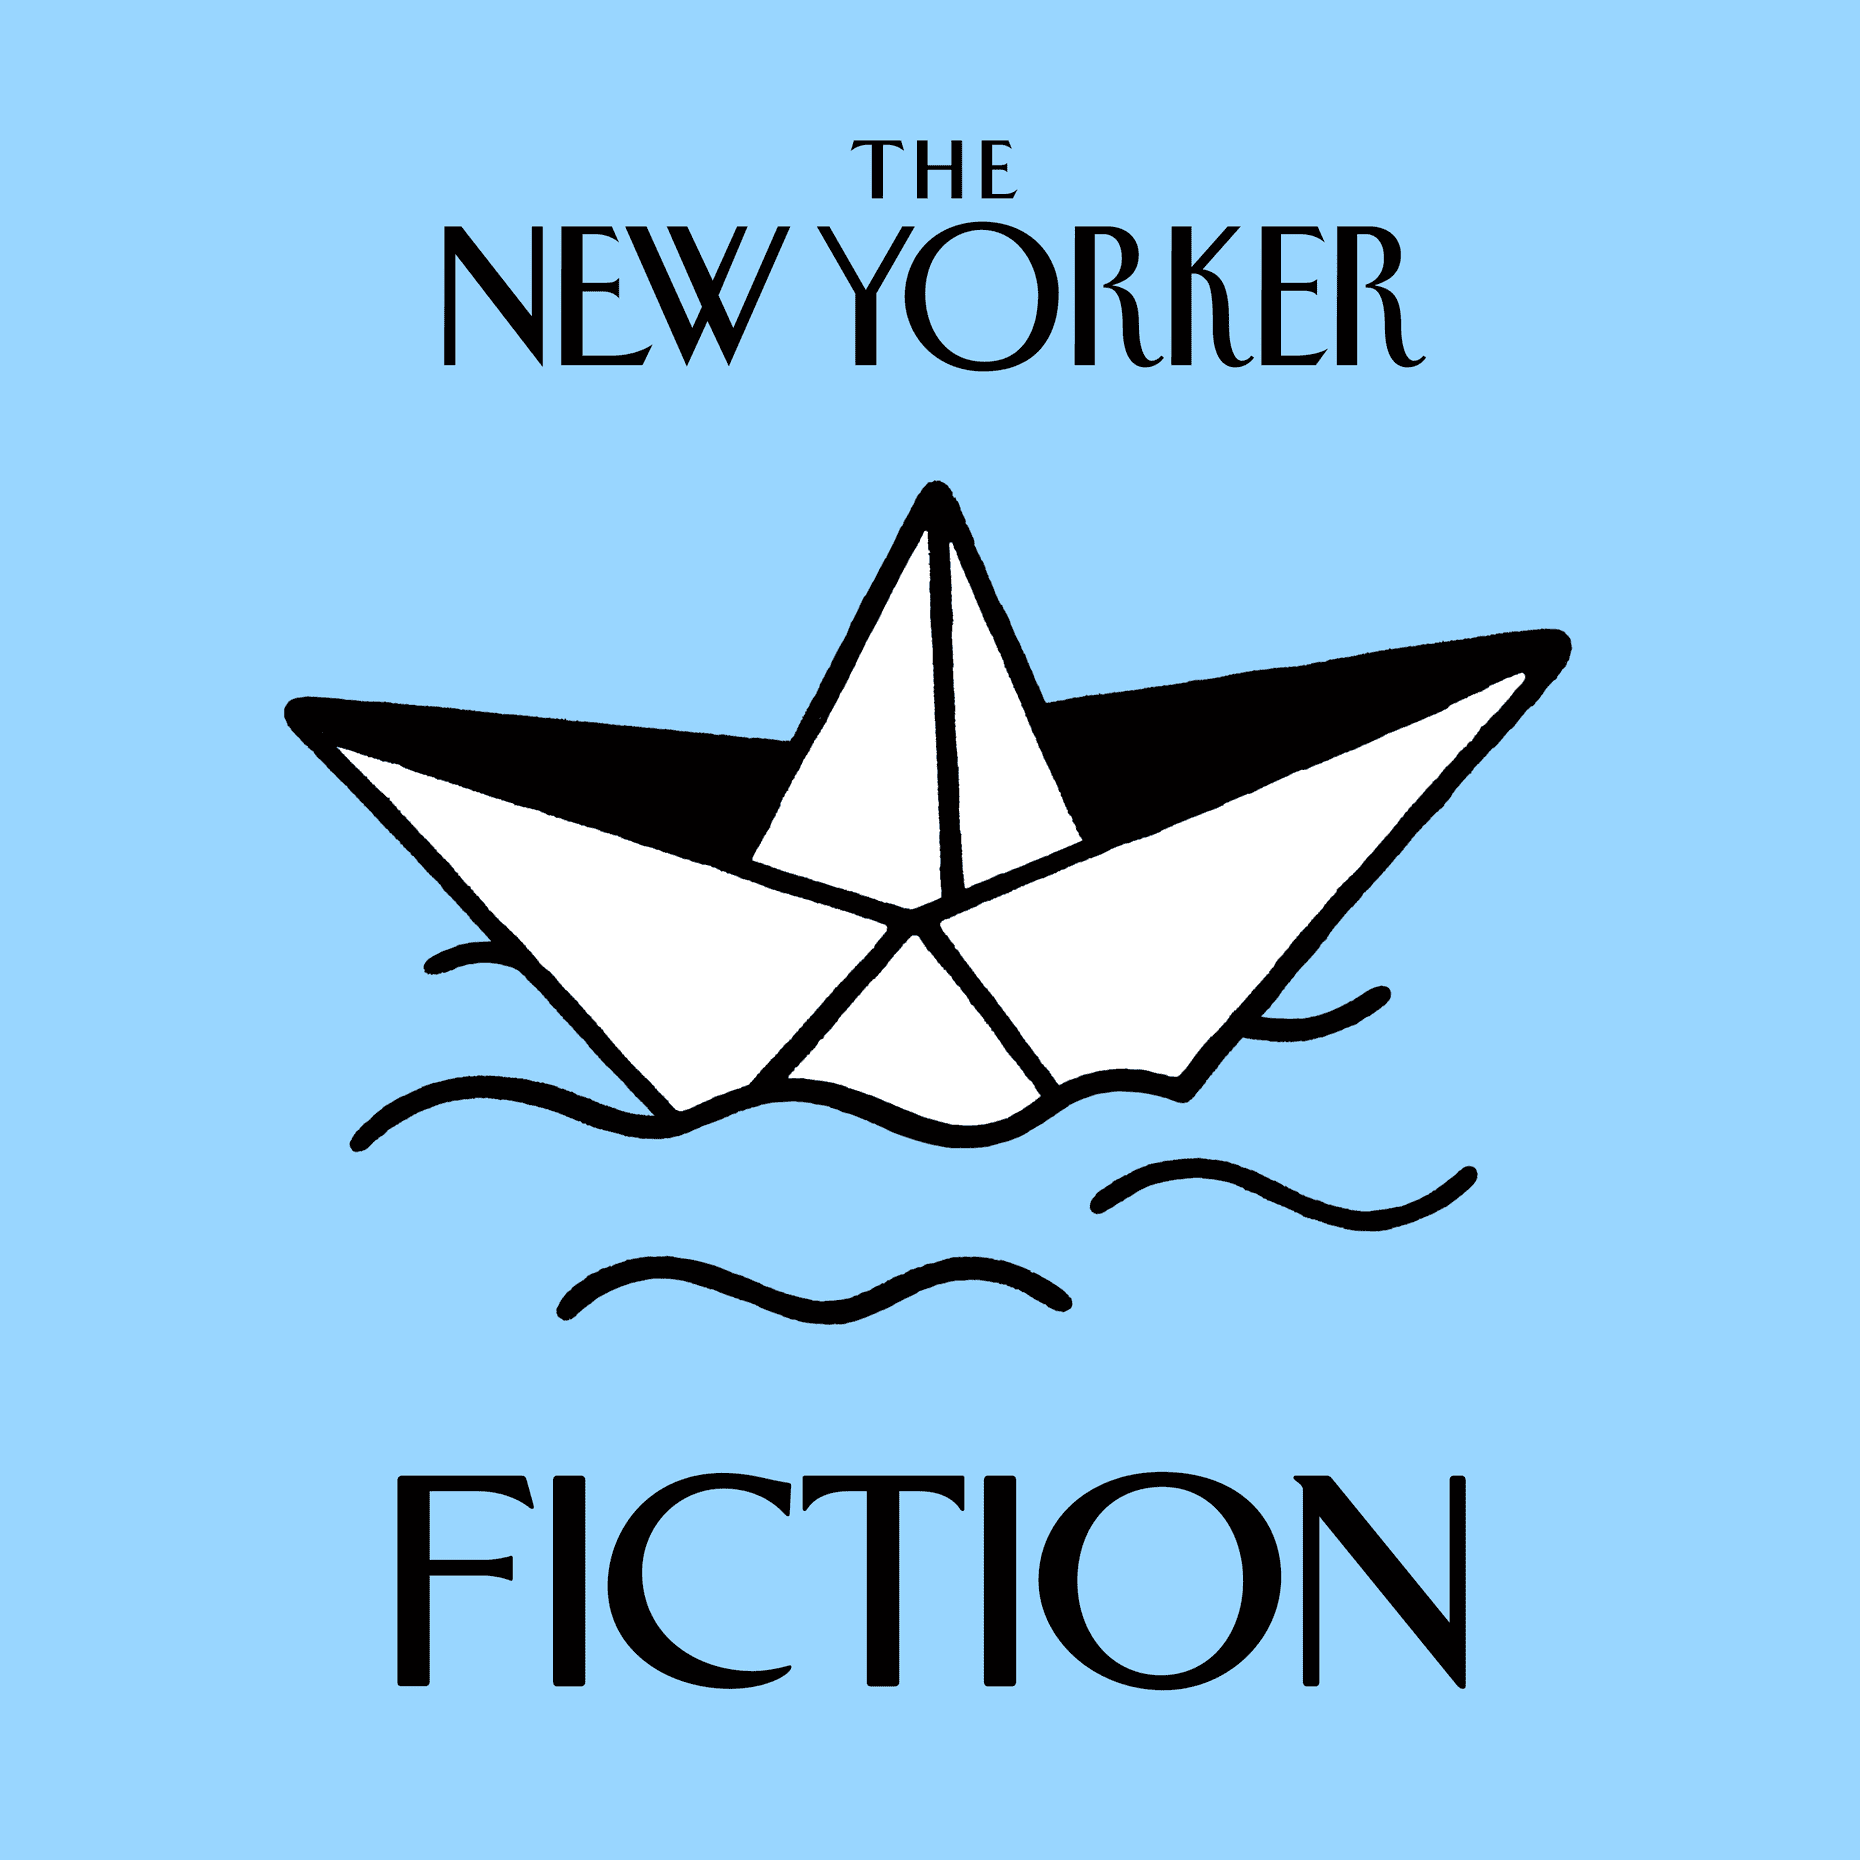 The New Yorker: Fiction | WNYC | New York Public Radio